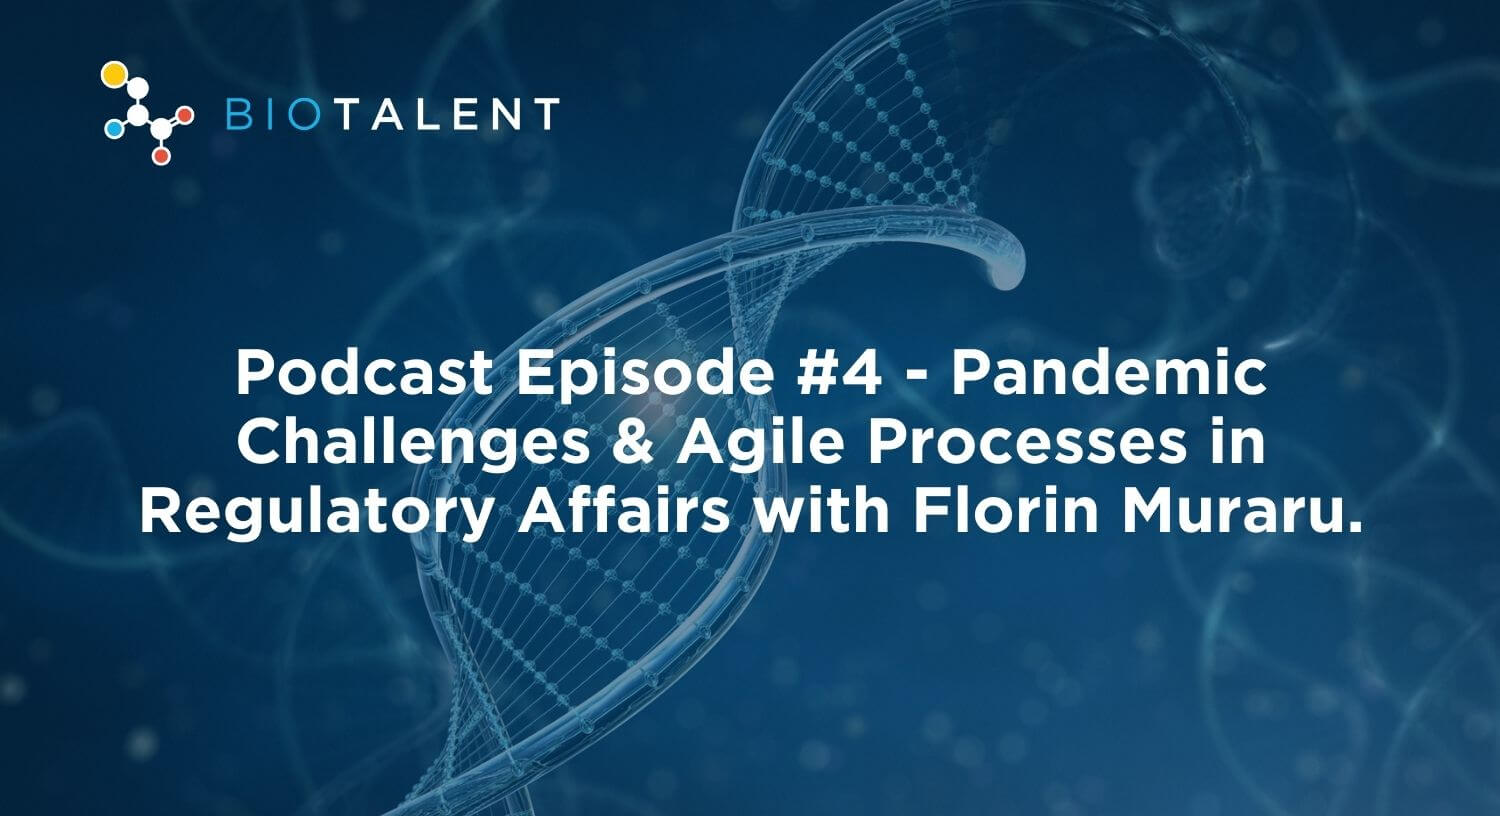 Podcast Episode #4 - Pandemic Challenges & Agile Processes in Regulatory Affairs with Florin Muraru